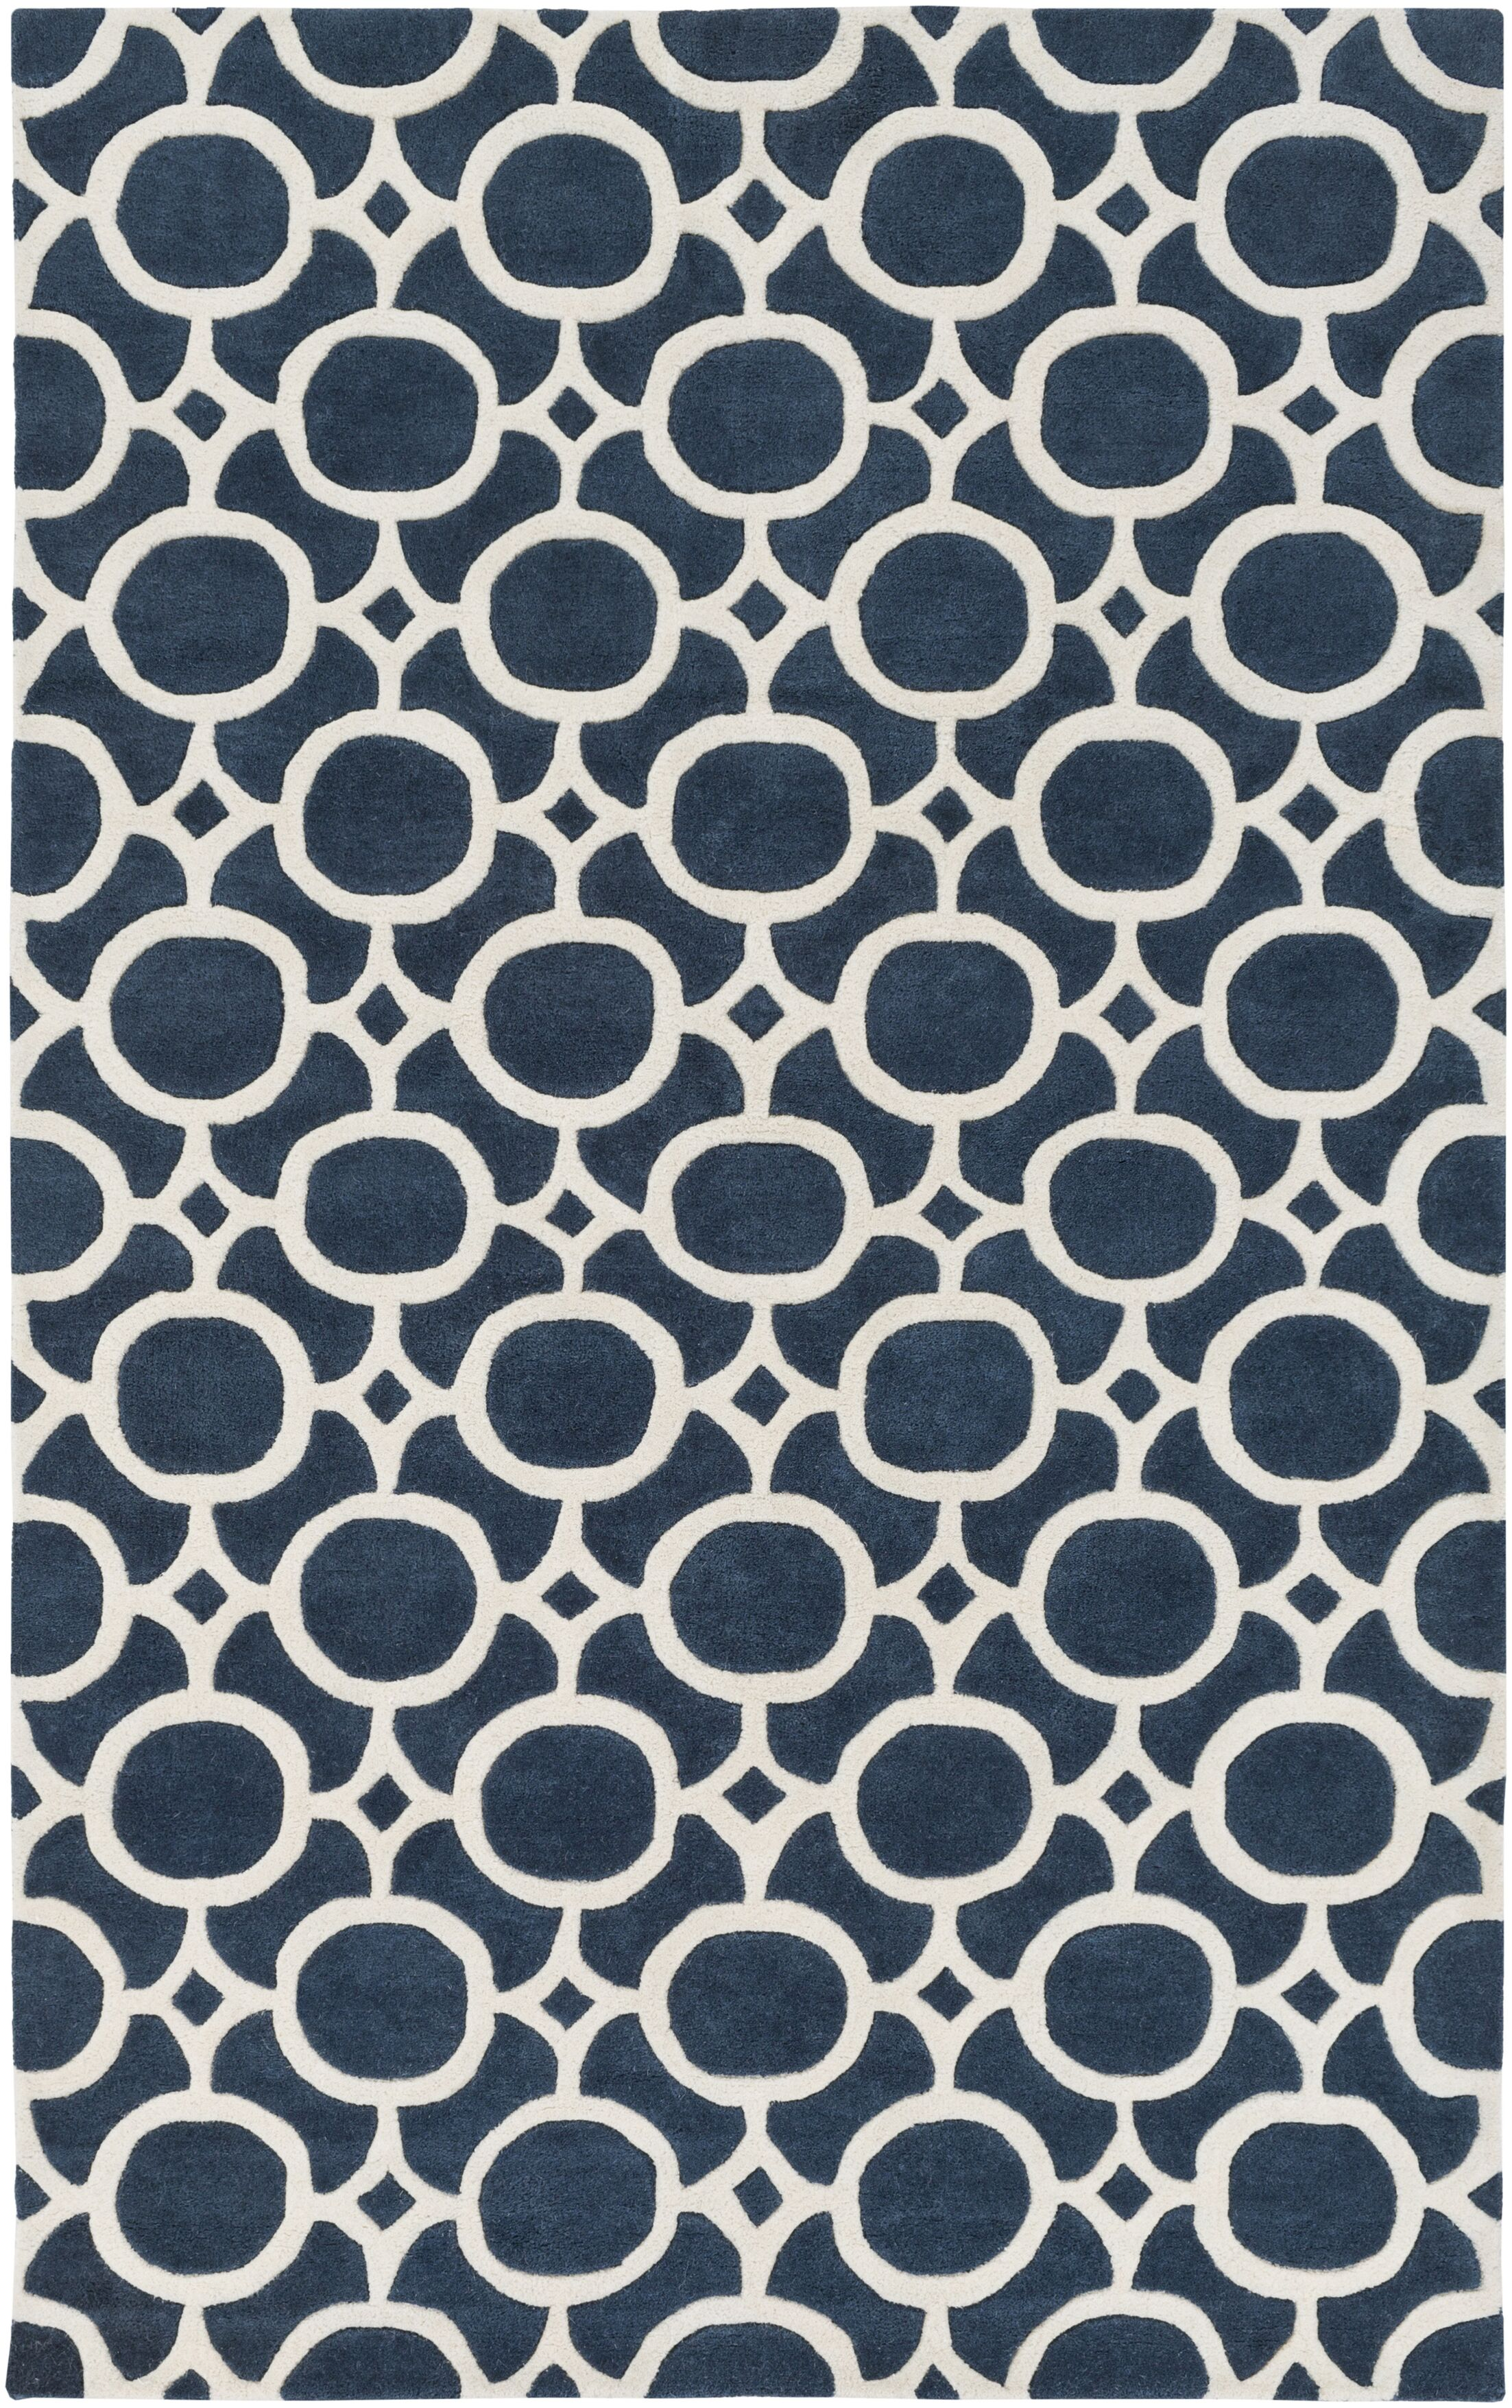 Murrow Hand-Tufted Royal Blue/Beige Area Rug Rug Size: Rectangle 4' x 6'